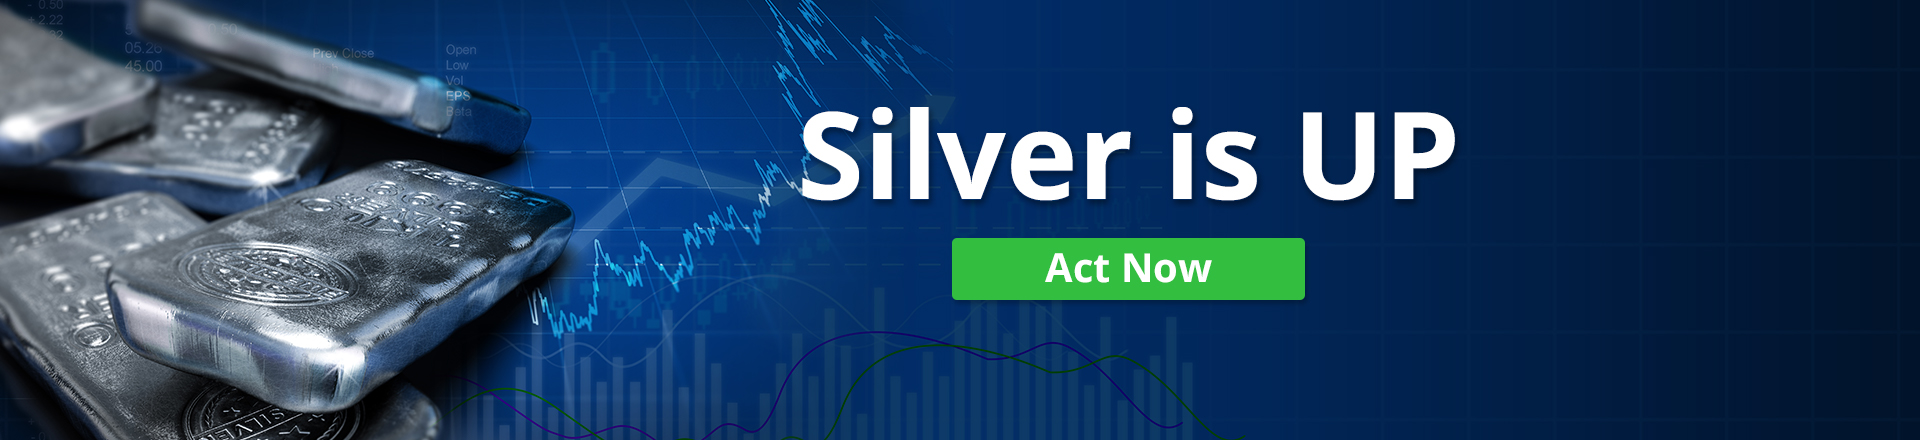 Silver is Up